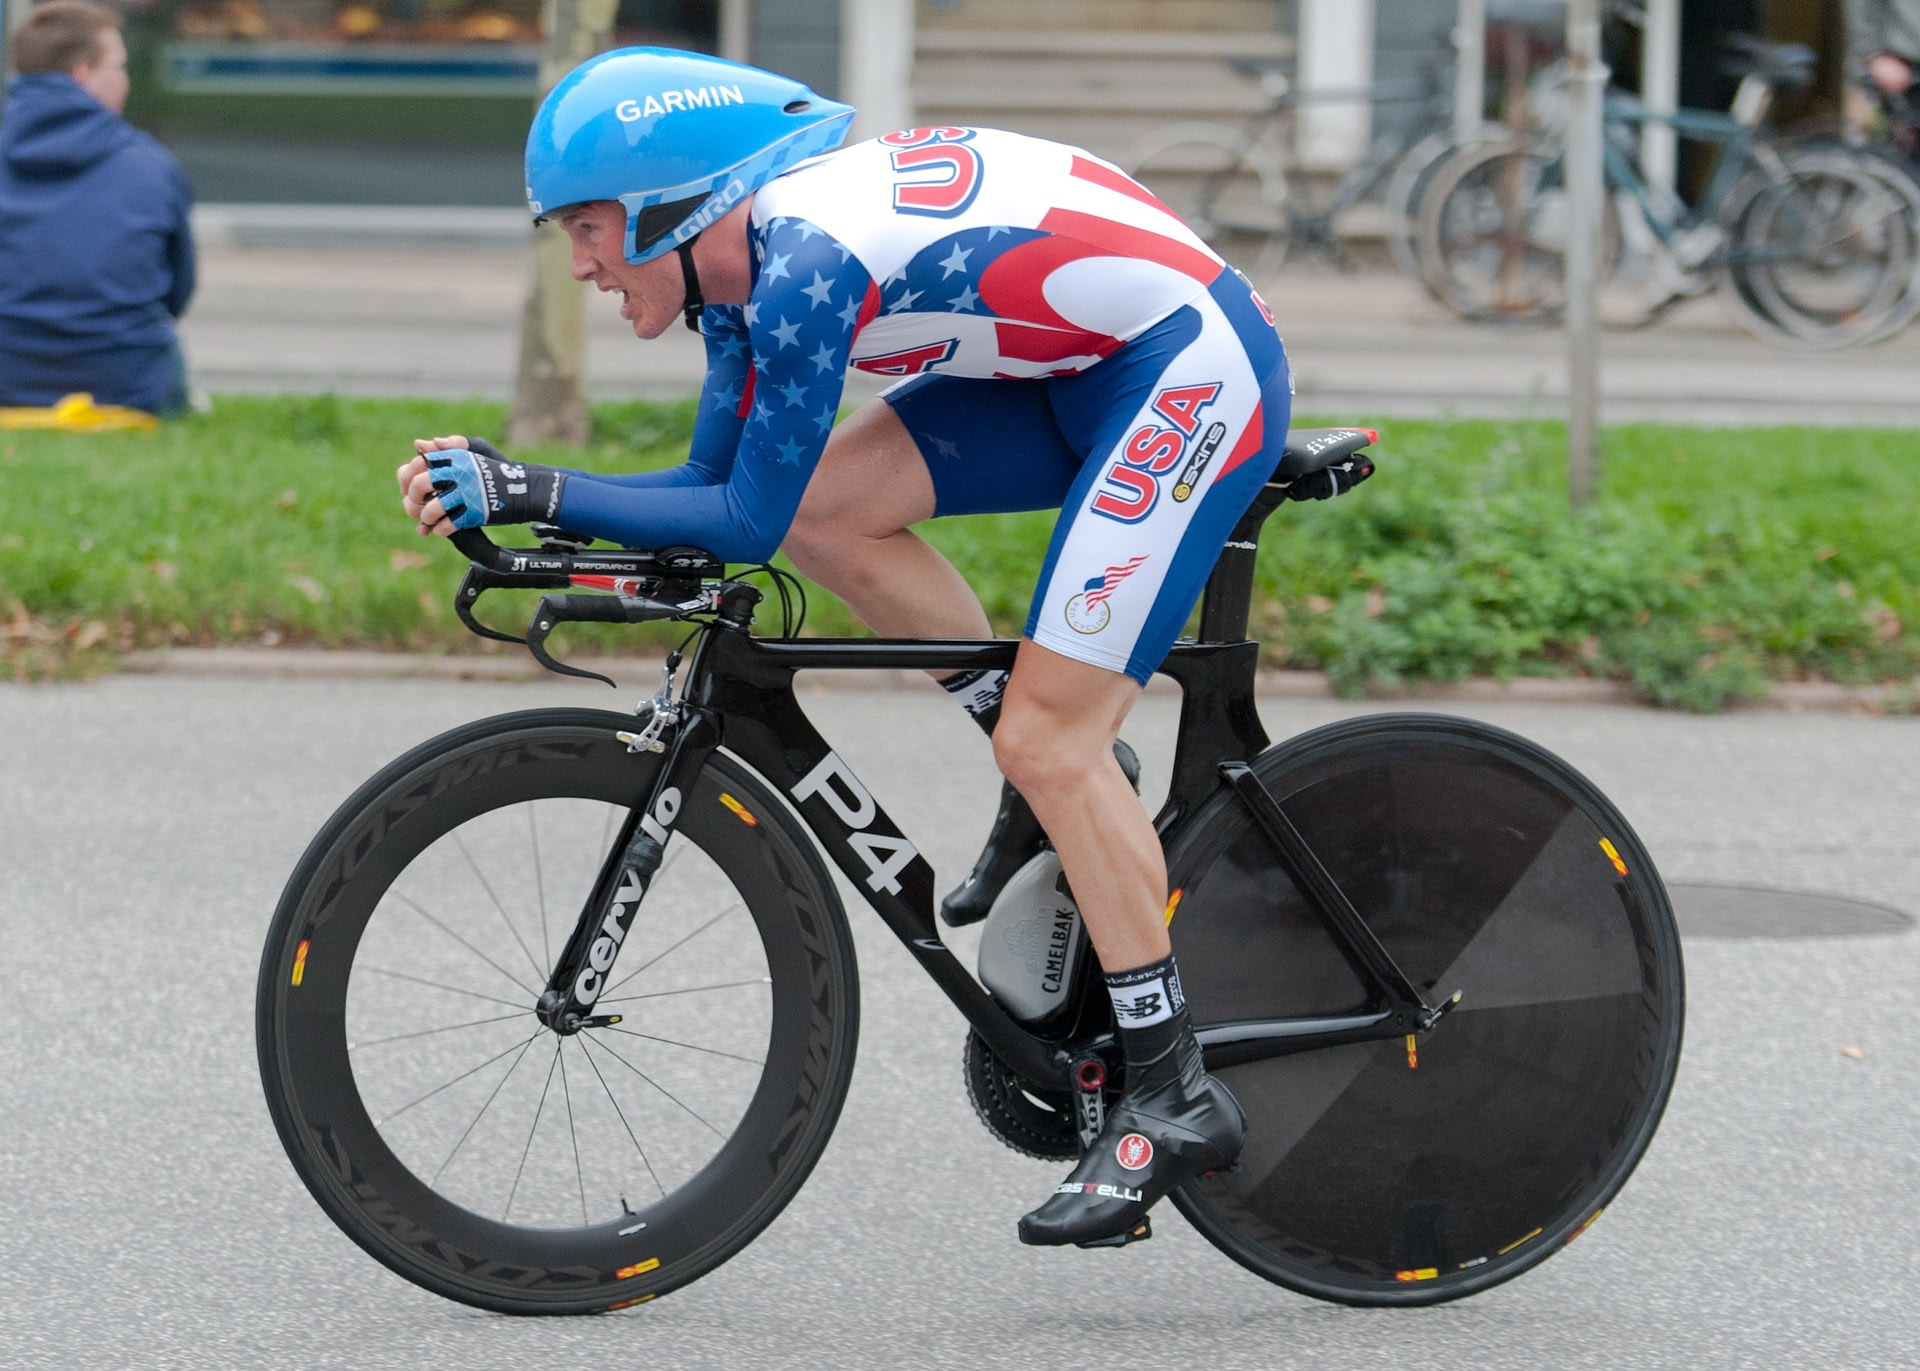 andrew talansky riding a bike after using cbd oil for athletes